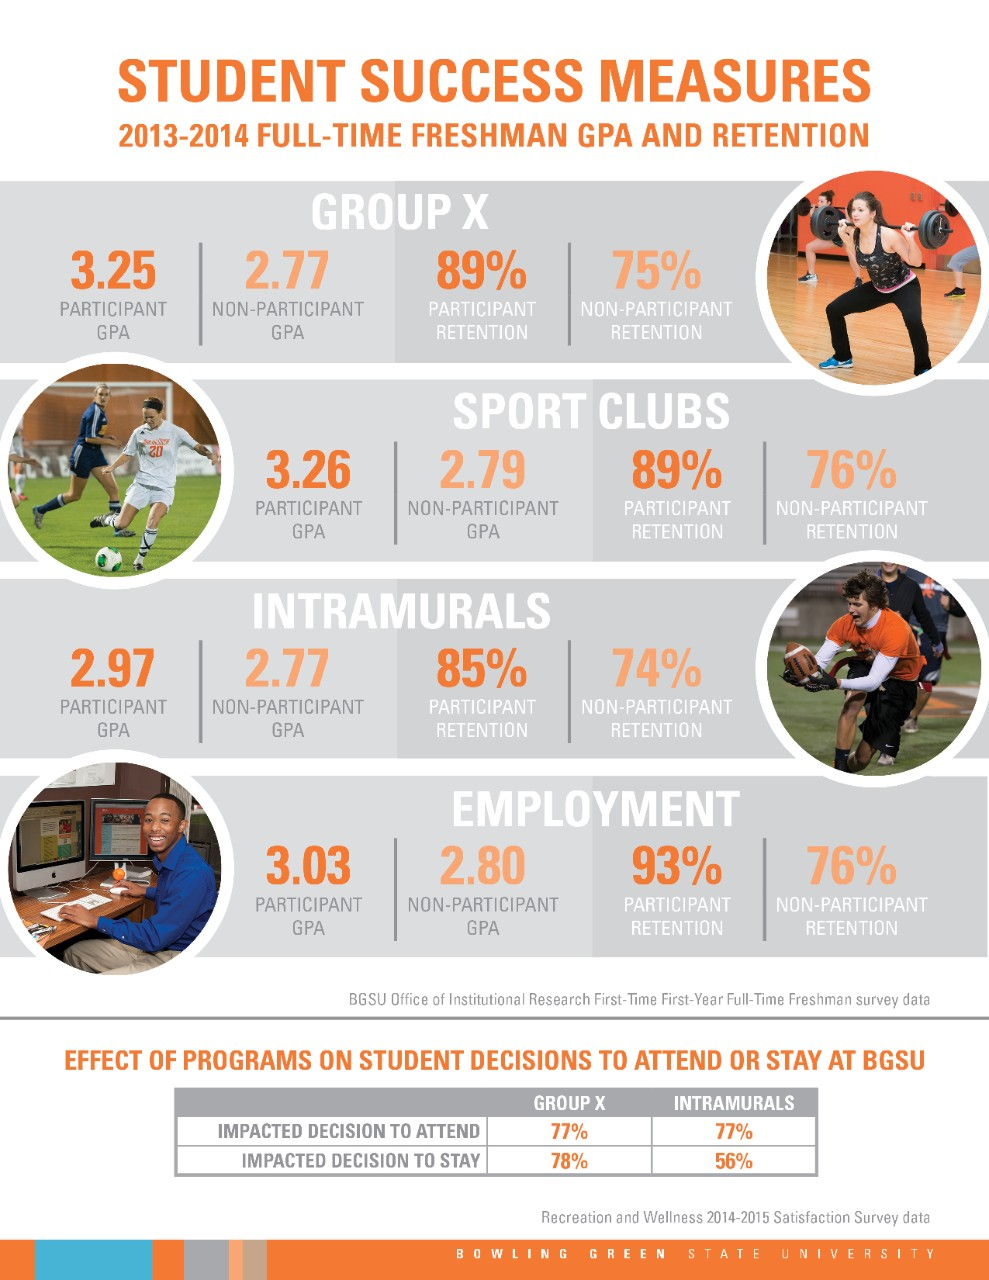 BGSU Recreation and Wellness 2014-2015 Data Flyer